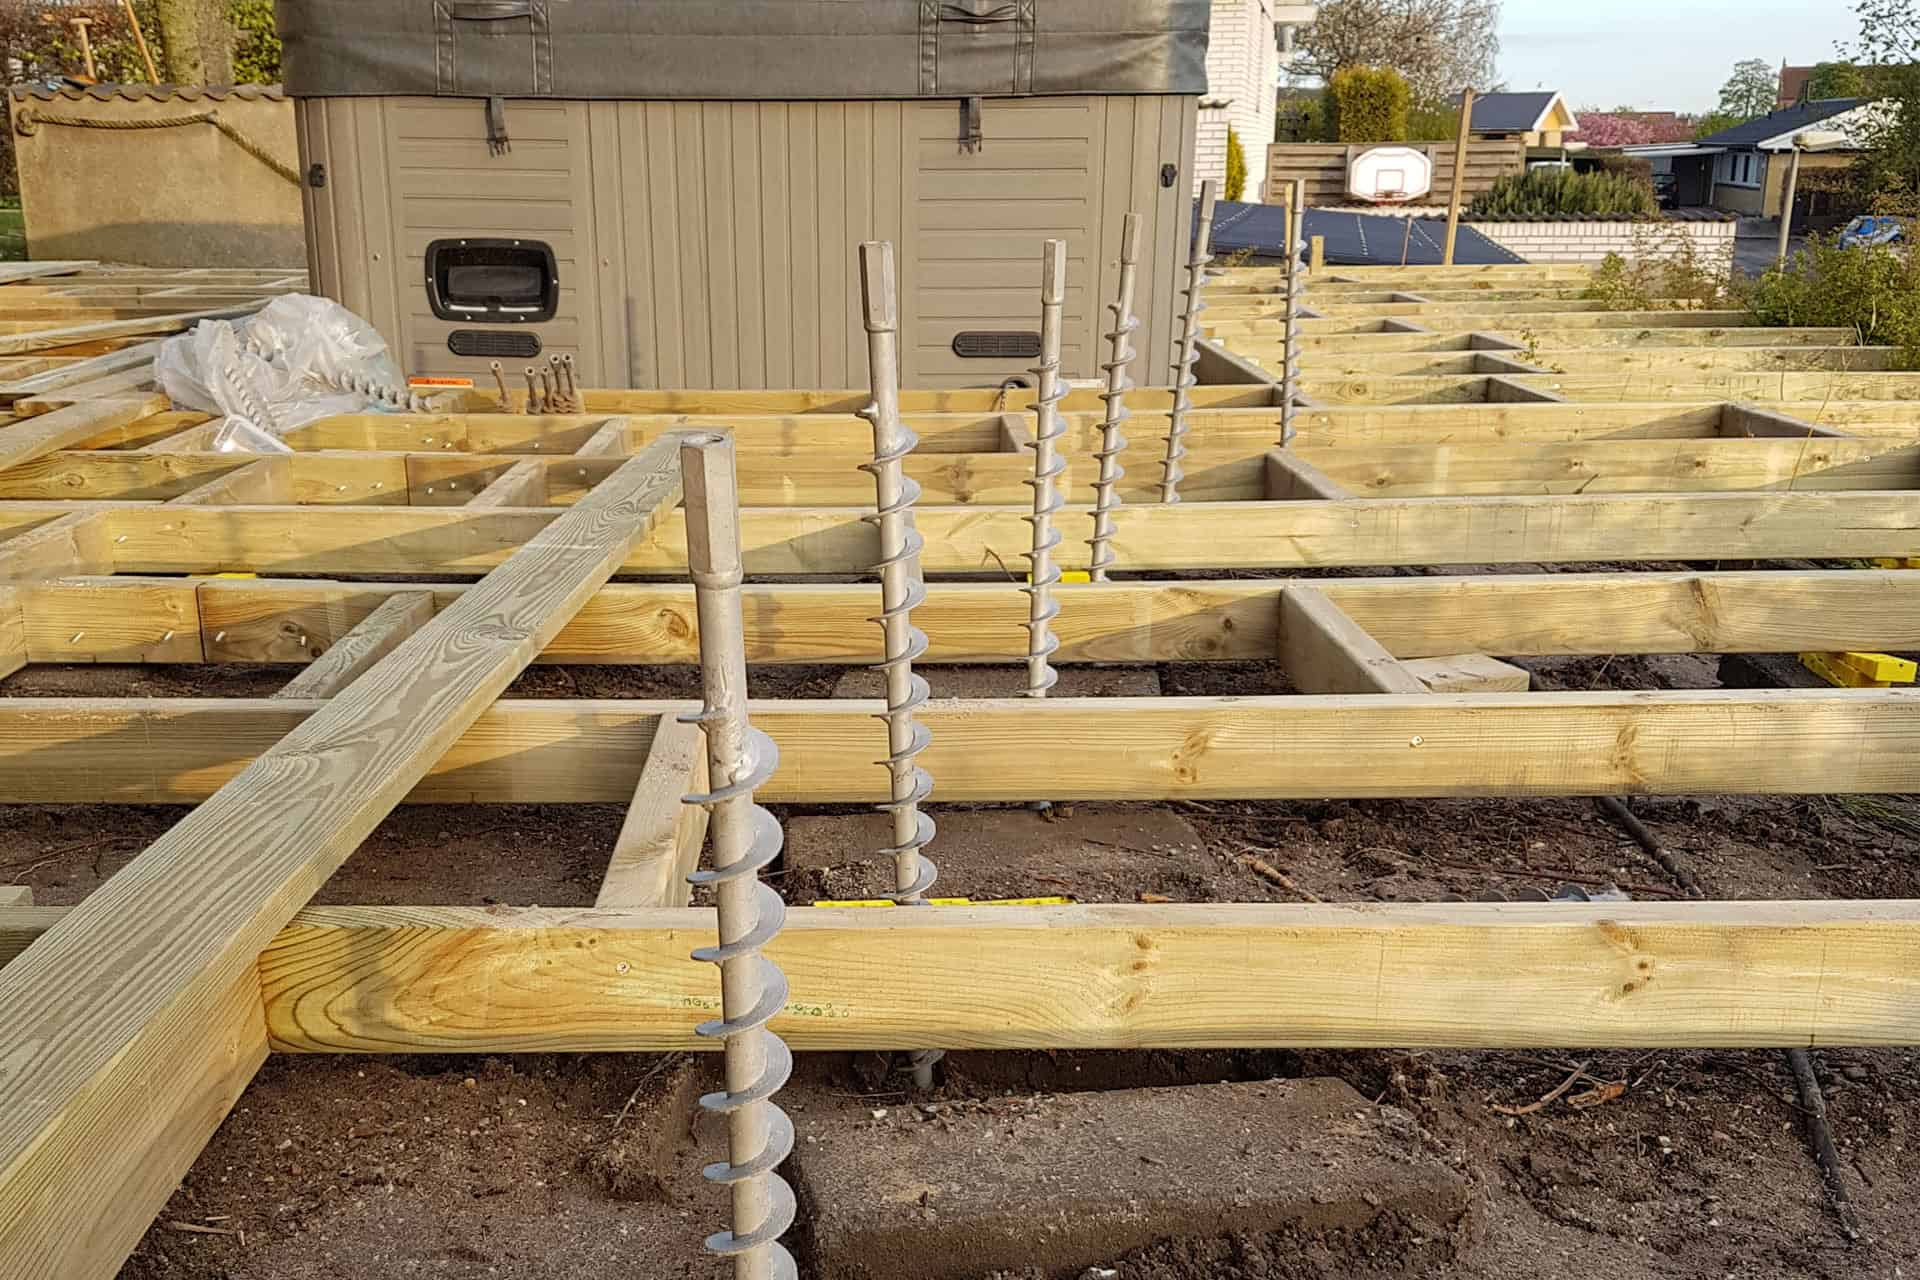 How to build a deck - GroundPlug Twister steel footings